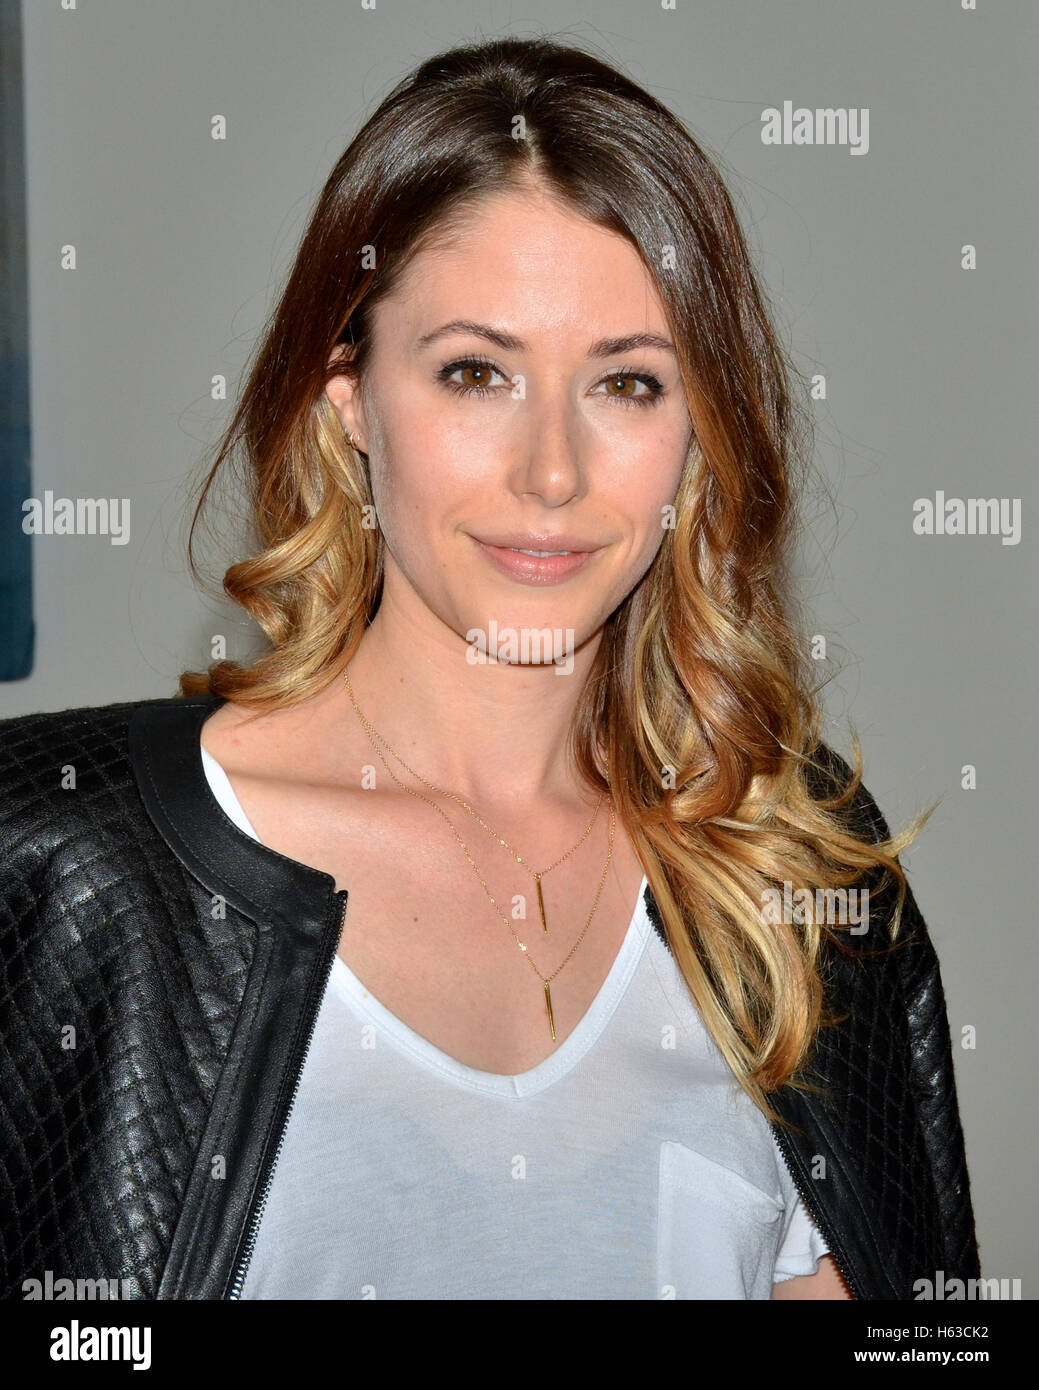 Amanda Crew attends the BCBG Max Azria Resort 2016 collections Stock ... ceaf1c76e